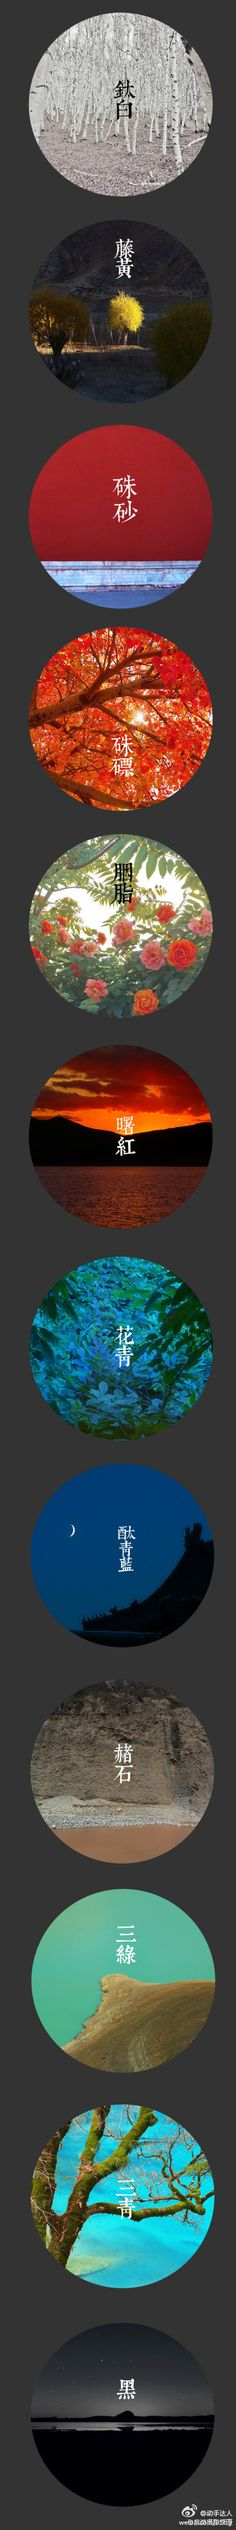 The 12 Color Collection in Traditional Chinese Arts